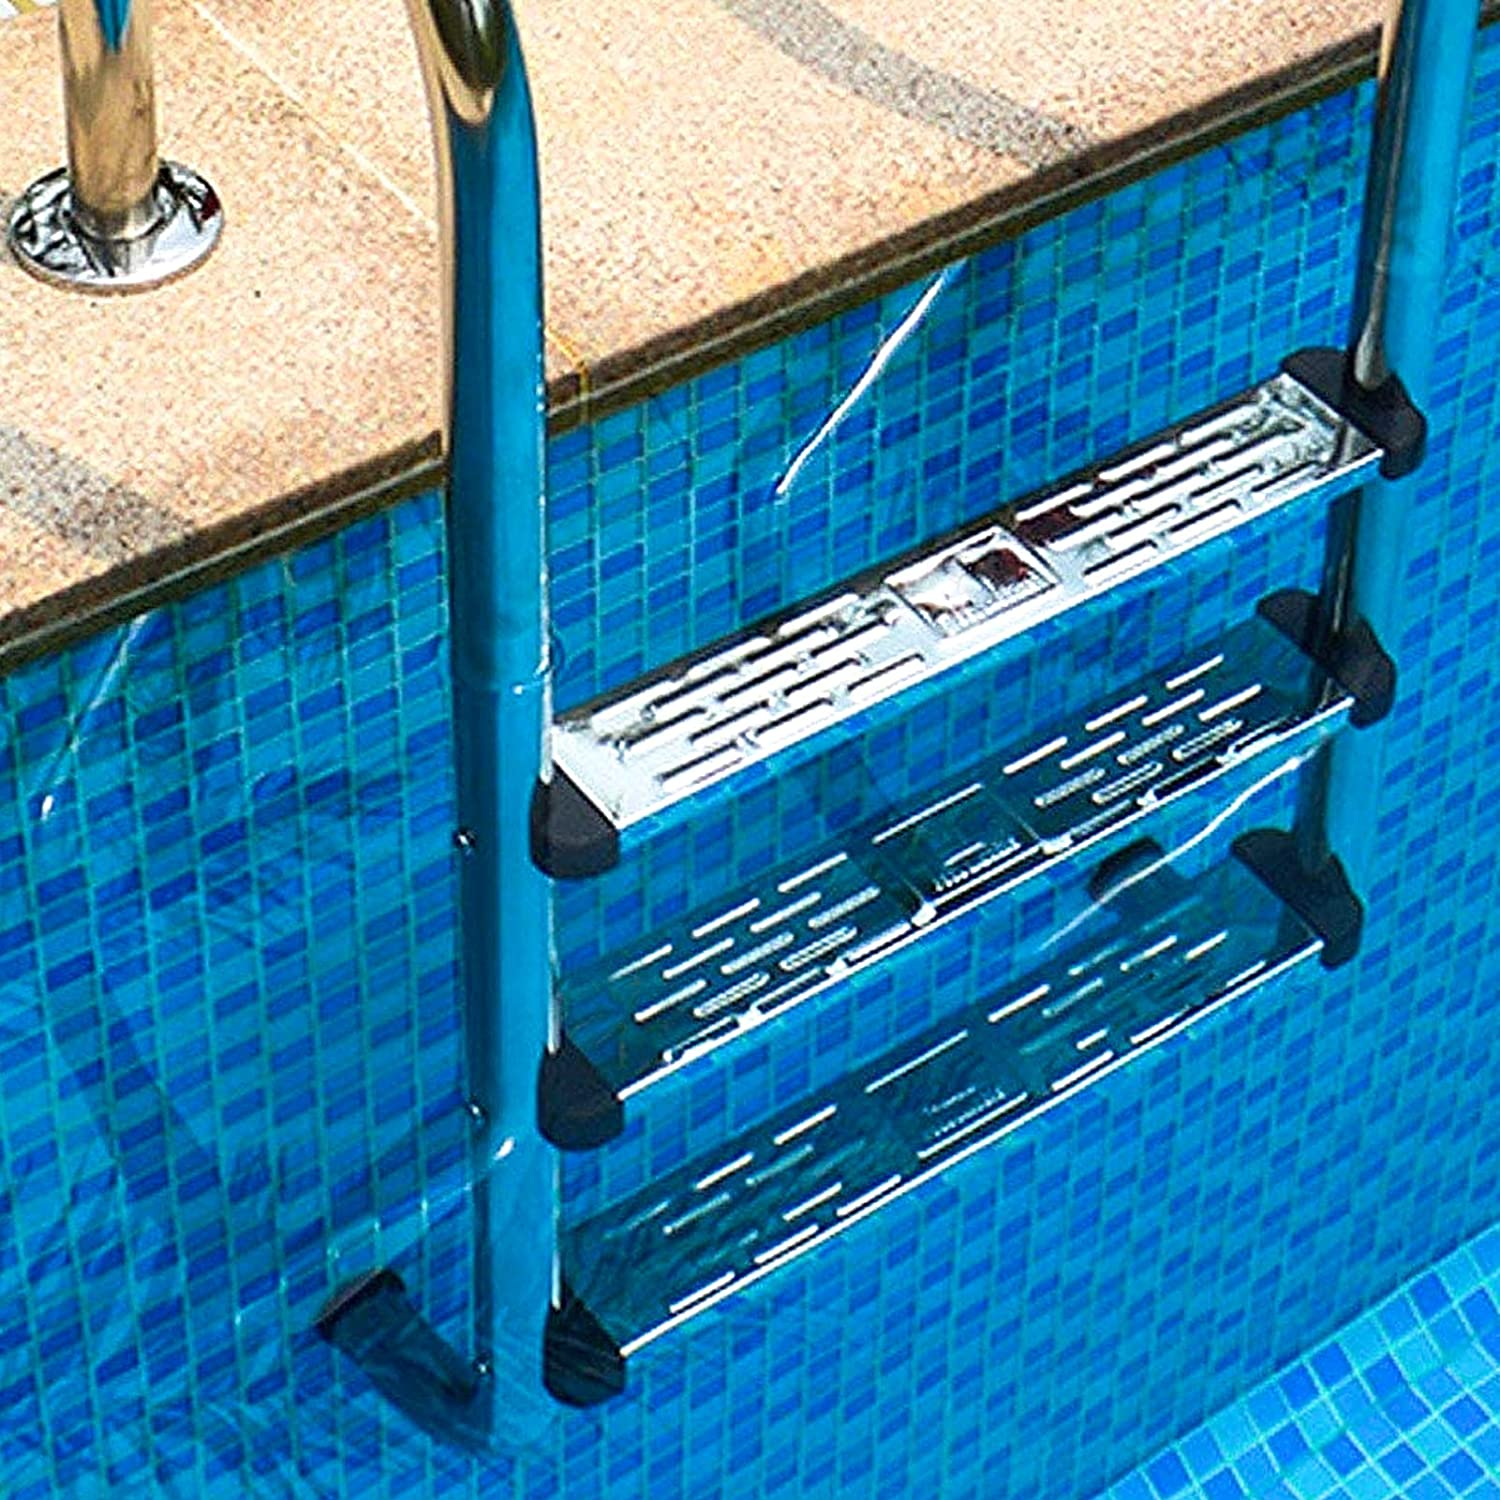 WYYXO Swimming Pool Steps Replacement Metal Max 58% OFF Anti-Rust P Inground Mail order cheap